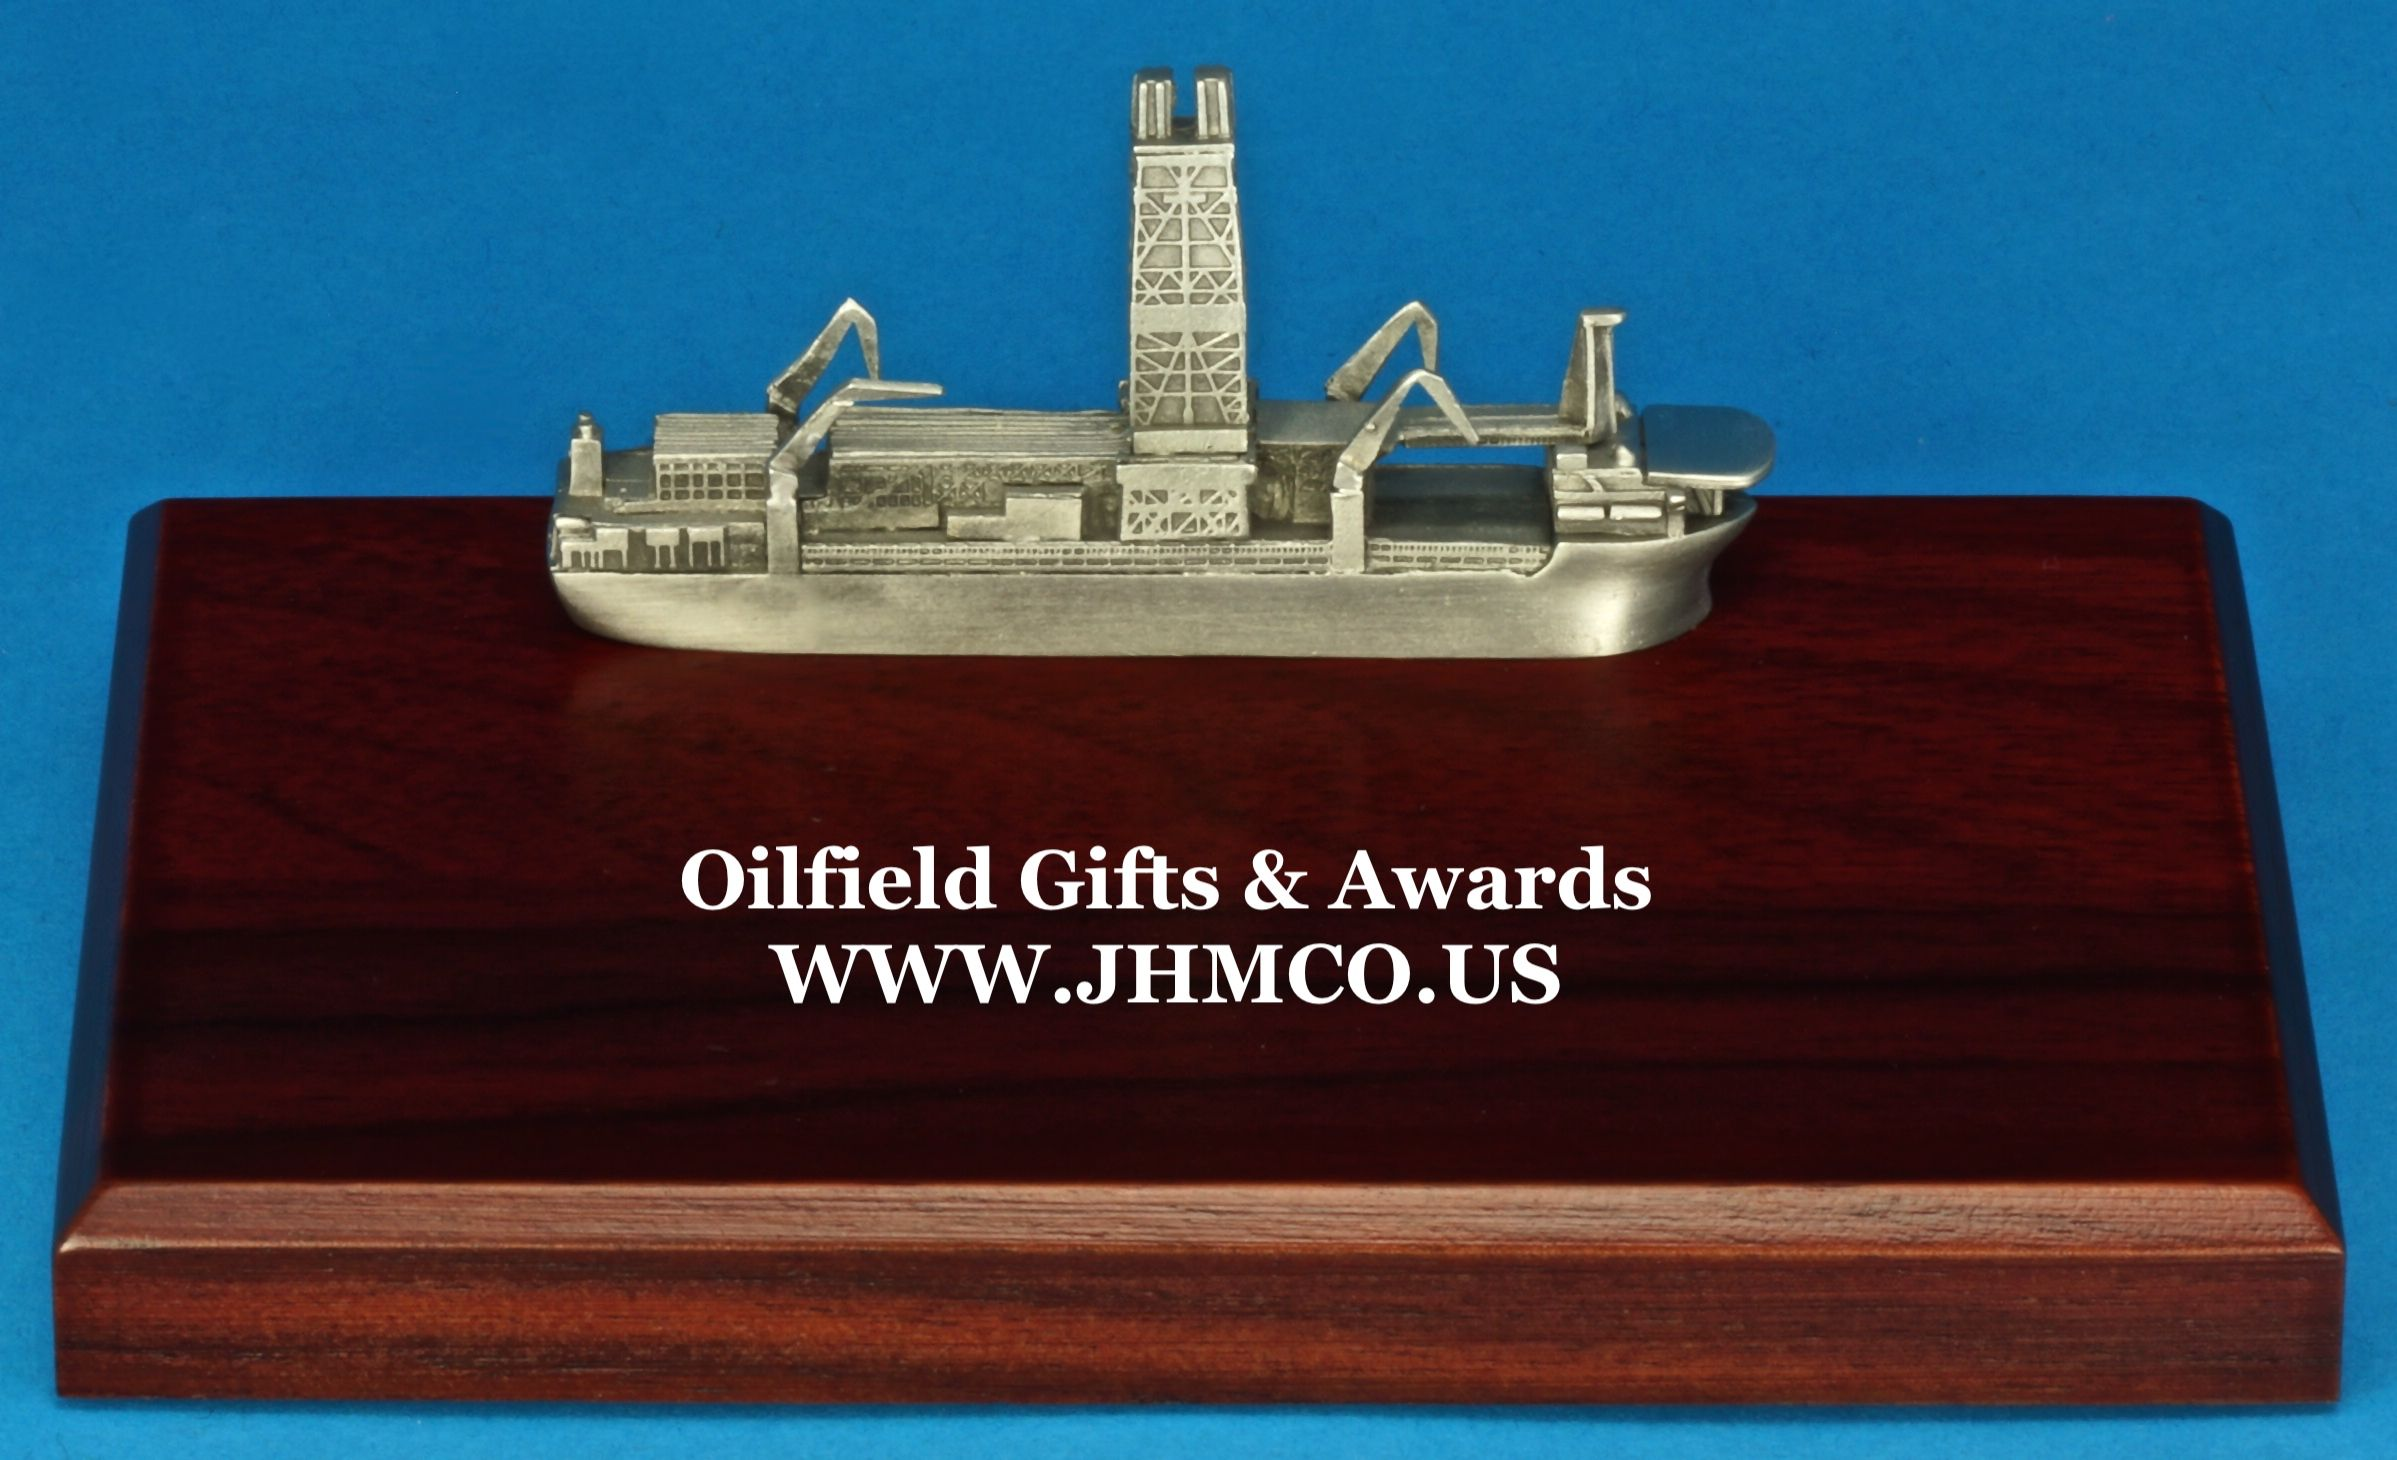 Dill Ship Oilfield Oil And Gas Offs Drill Rig Model Award Gifts Great Plaques For Roughnecks Industry Workers John H Martin Company Since